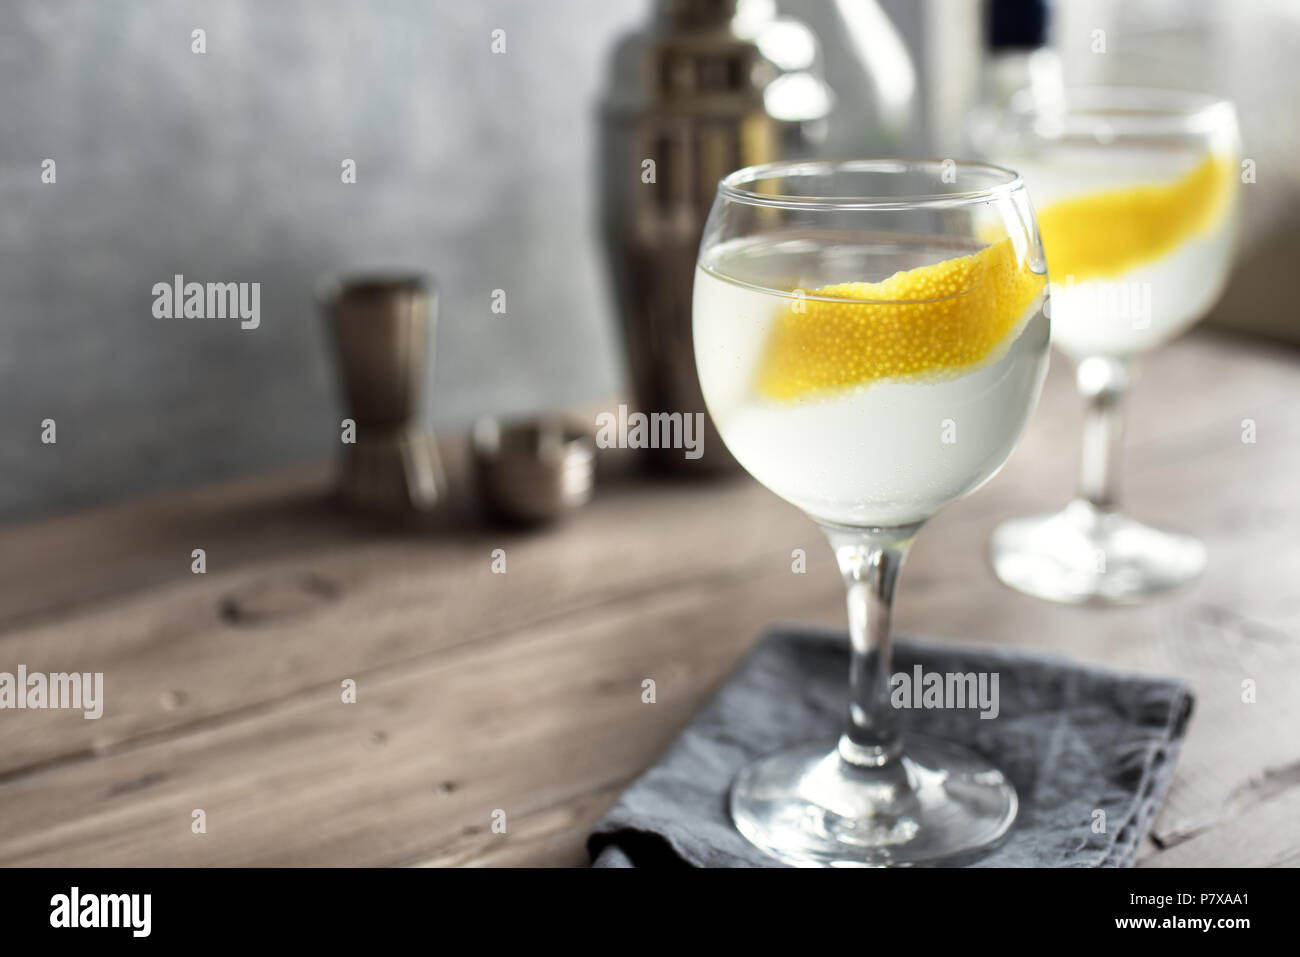 Vesper Martini Cocktail with lemon wedge. Homemade Vesper Cocktail on table, copy space. Stock Photo